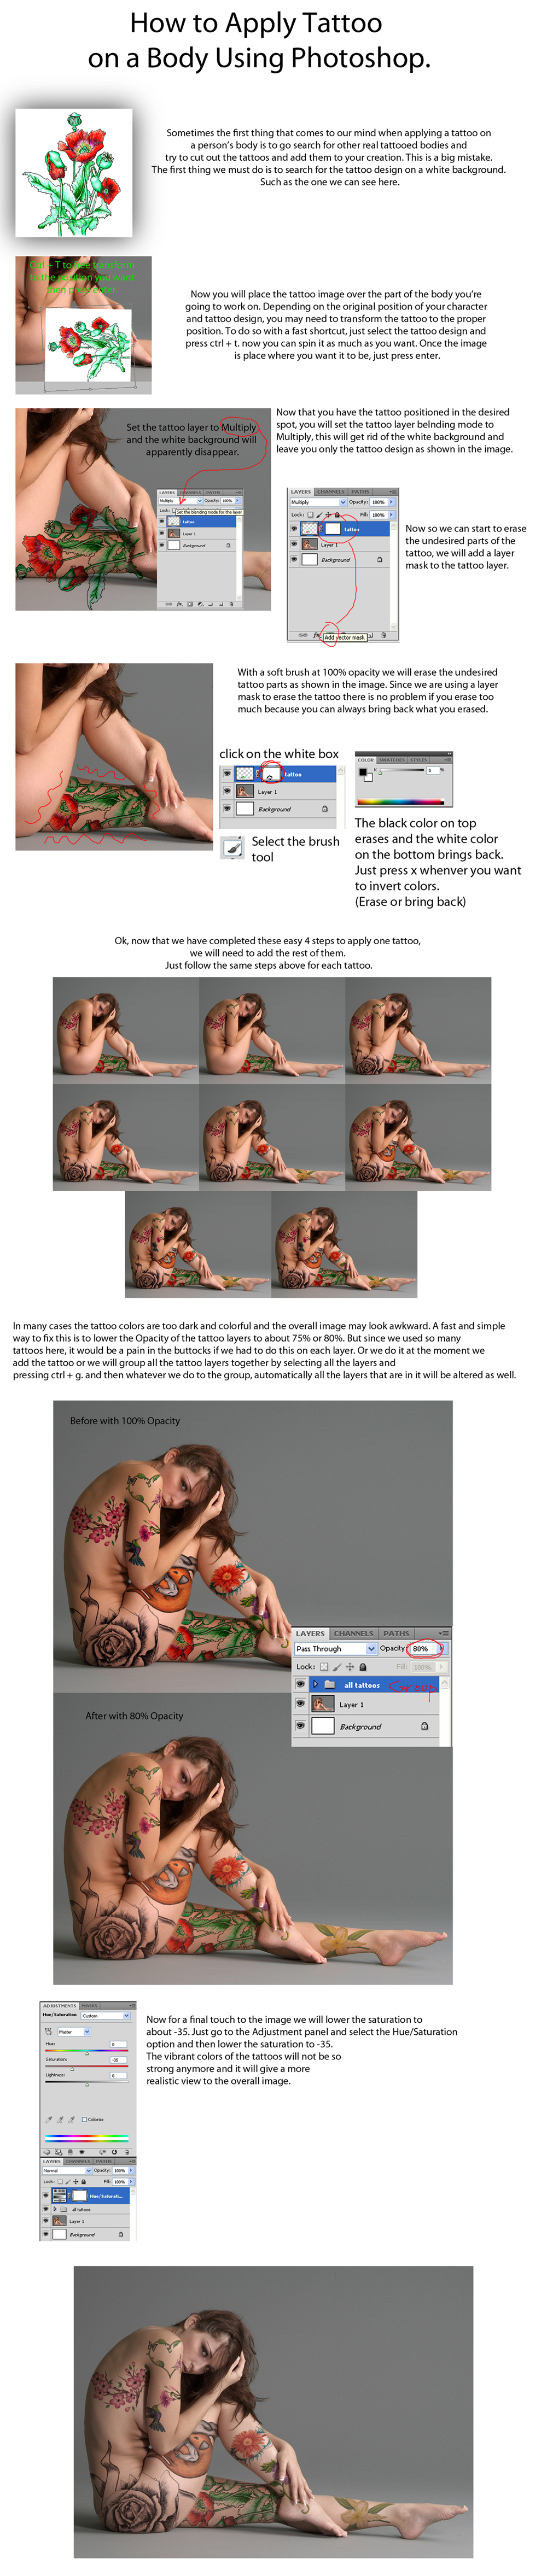 Apply Tattoo with Photoshop - TUTORIAL